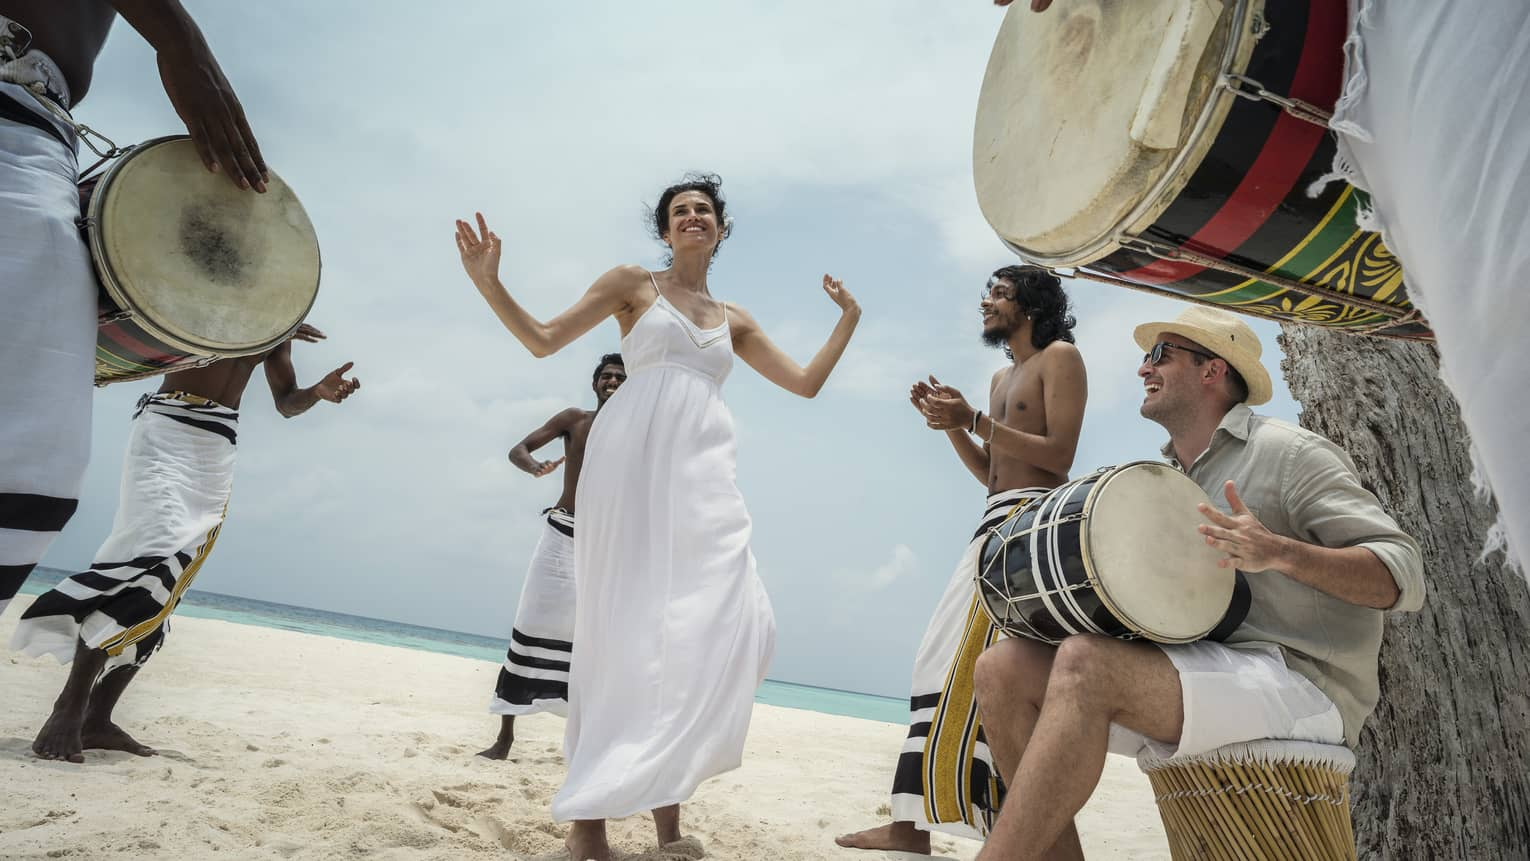 Woman wearing white dress dances in middle of drummers on beach